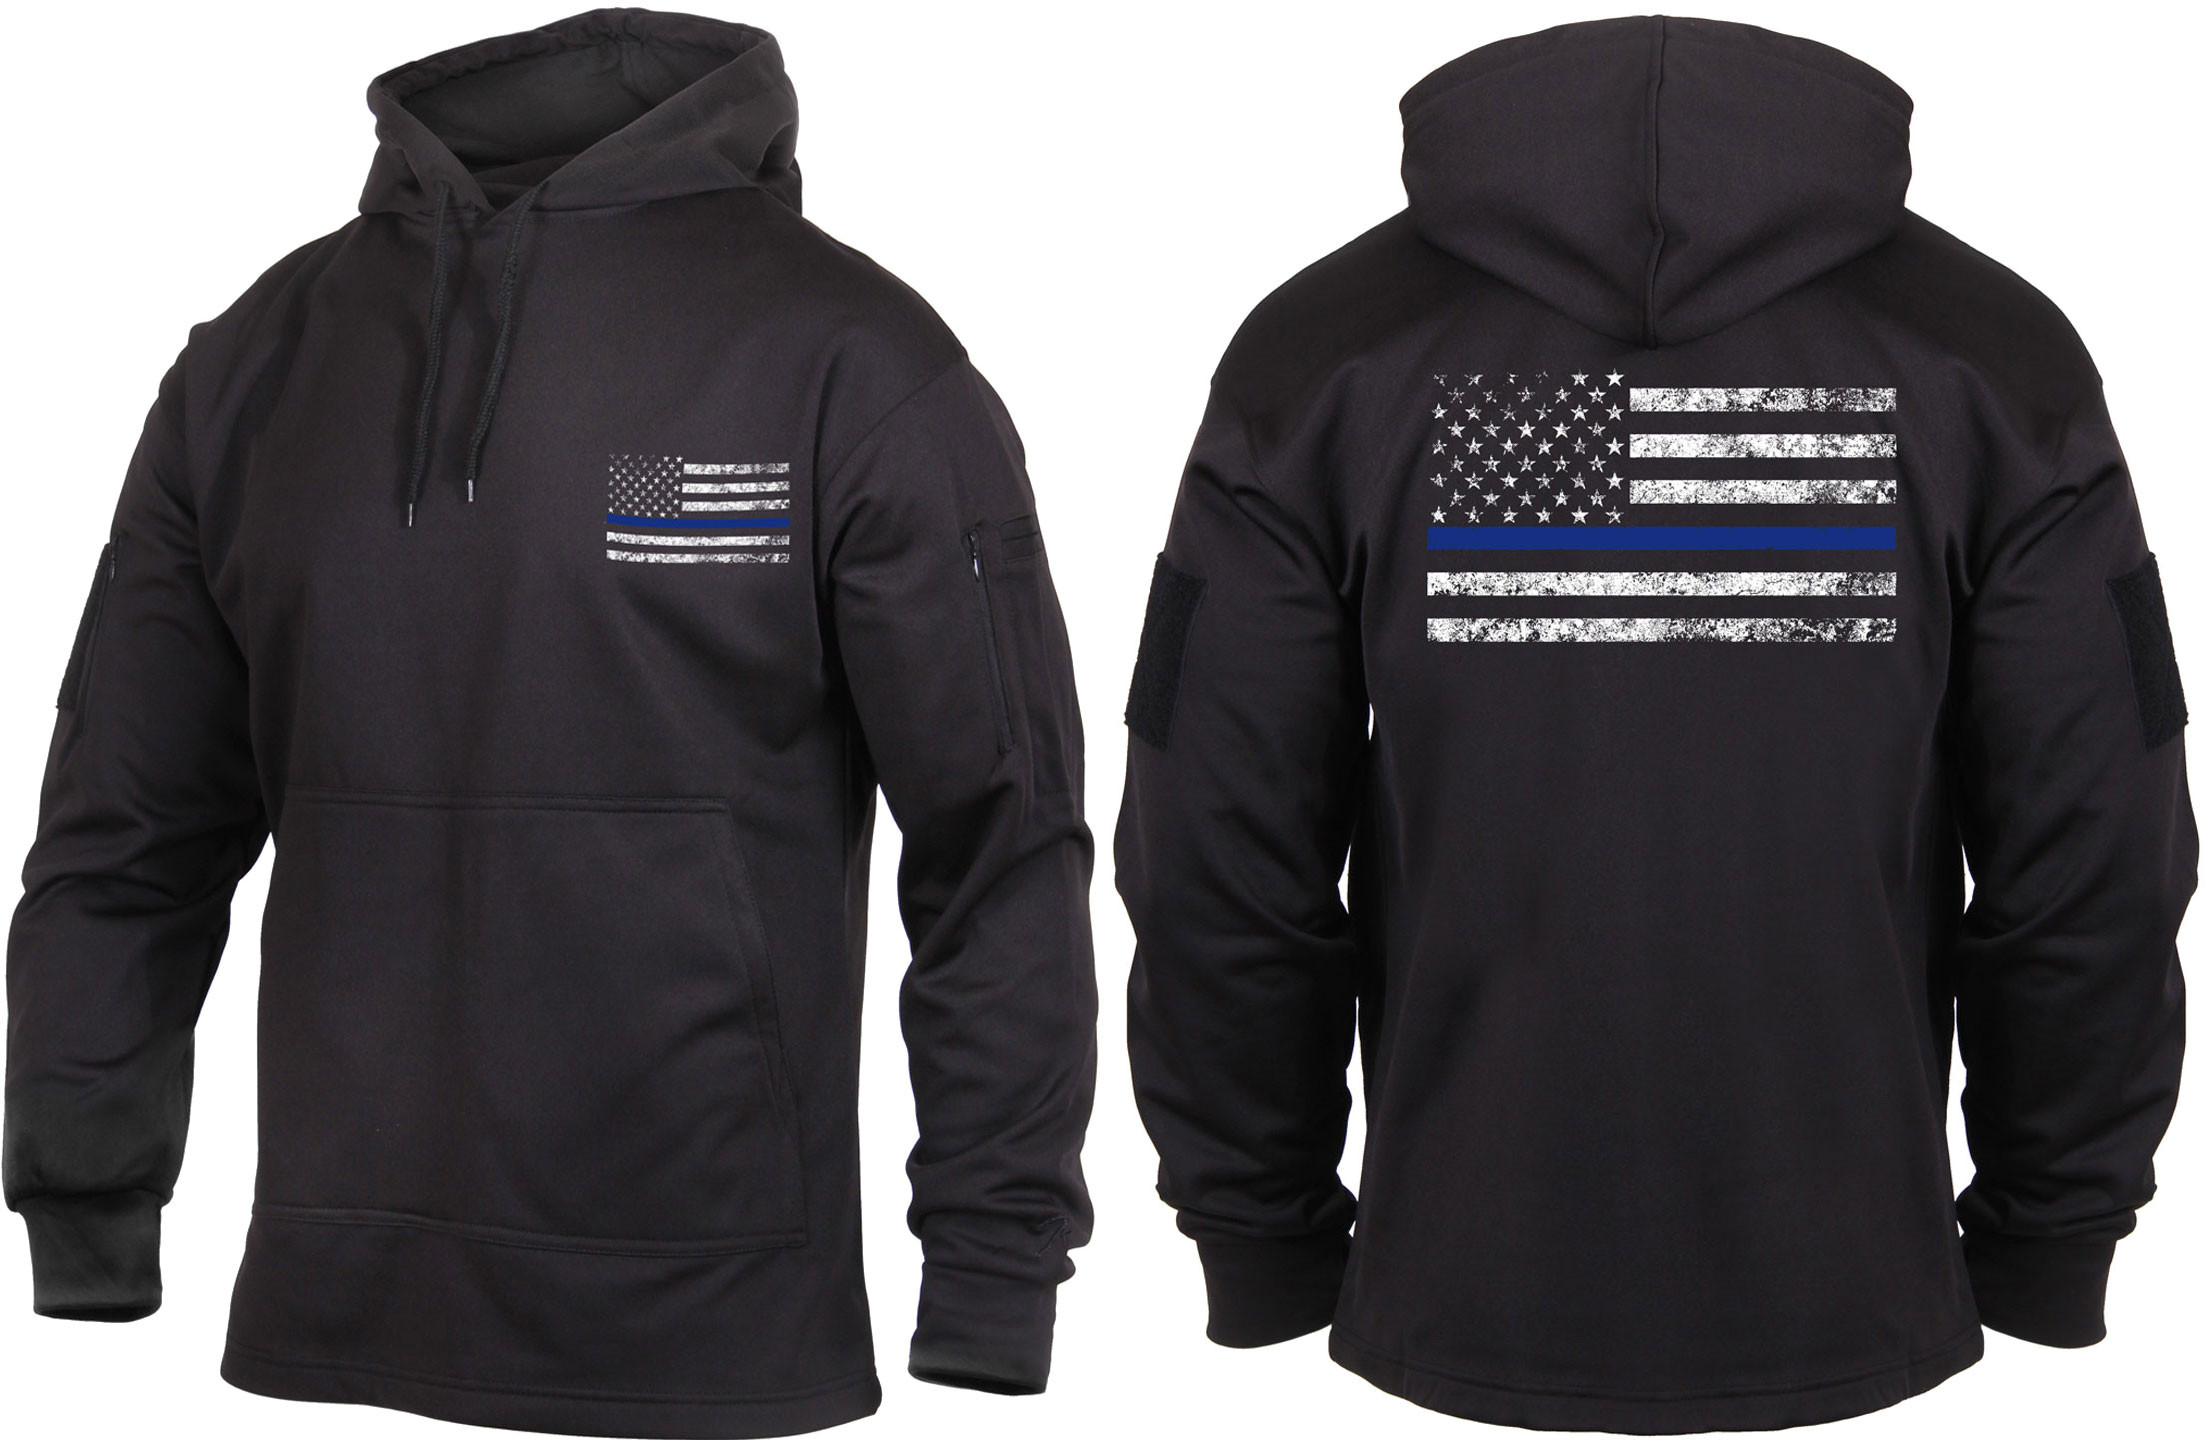 Black Concealed Carry Thin Blue Line Tactical Hoodie Sweatshirt cfa97c196ec